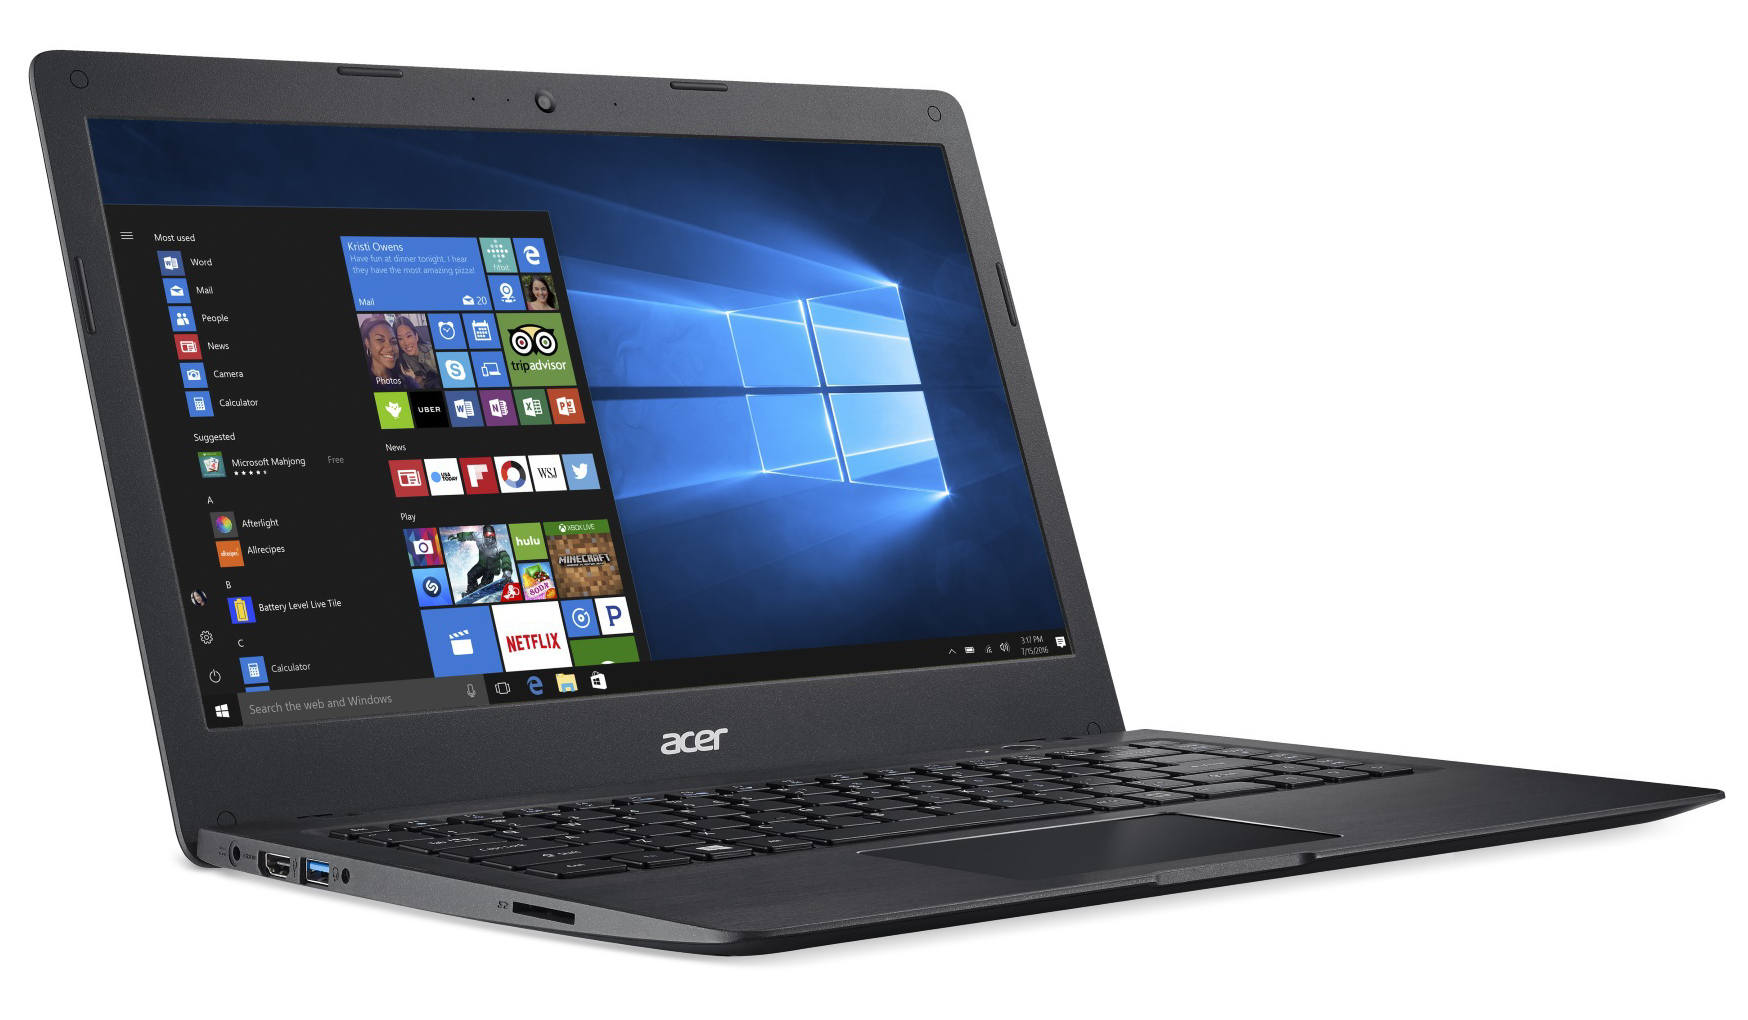 Acer Swift 1 SF114 31 P6F6 Notebook Review